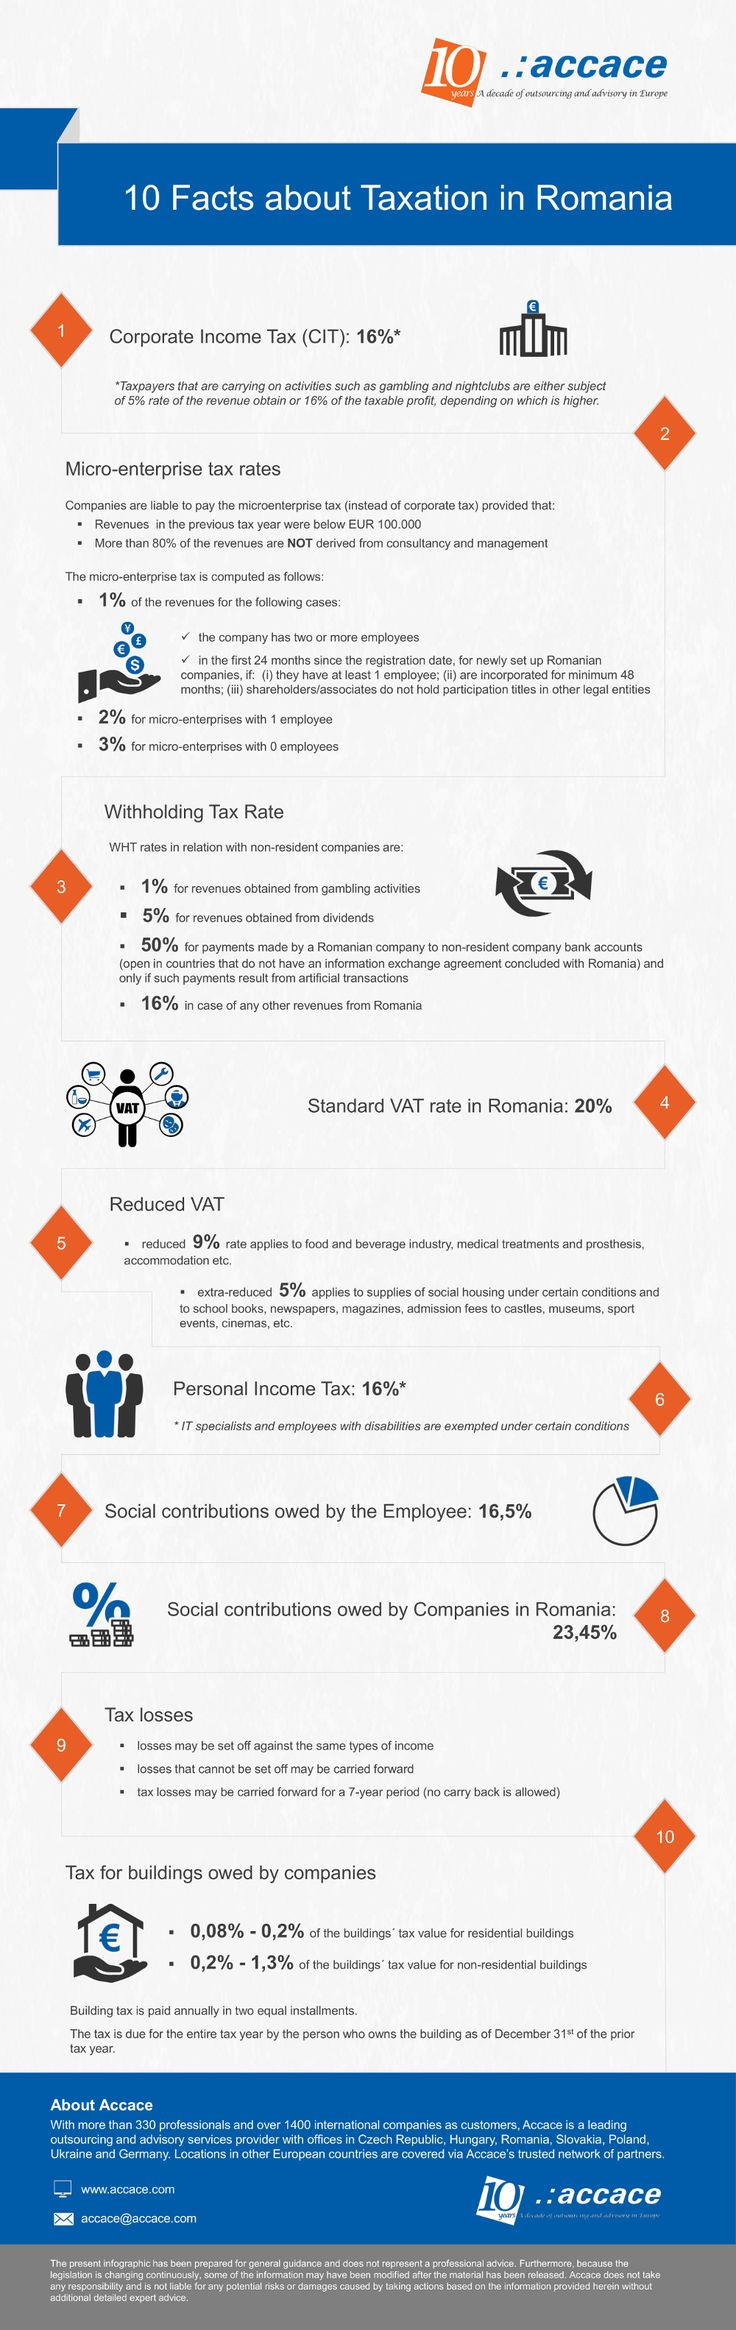 10 facts about taxation in Romania | Infographic